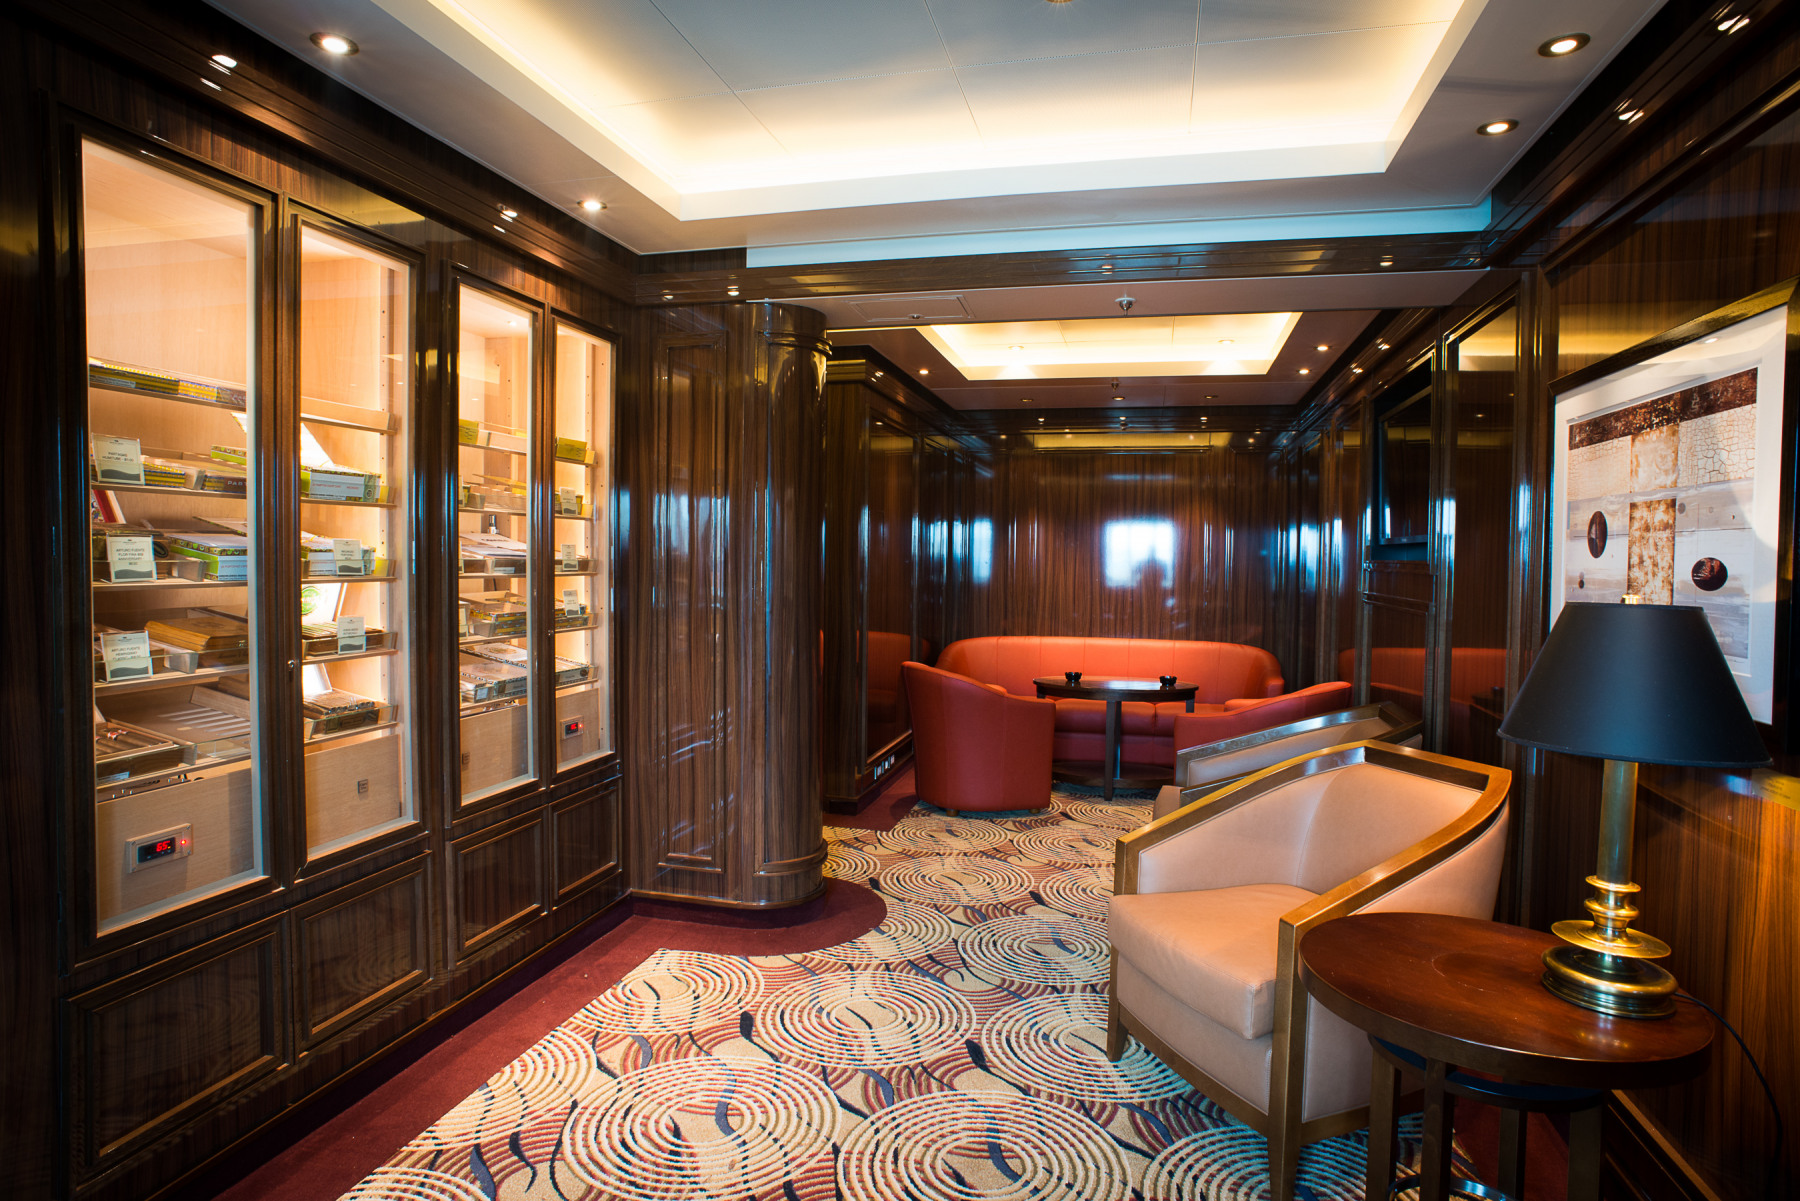 Princess Cruises Coral Class Interior cigar room.jpg